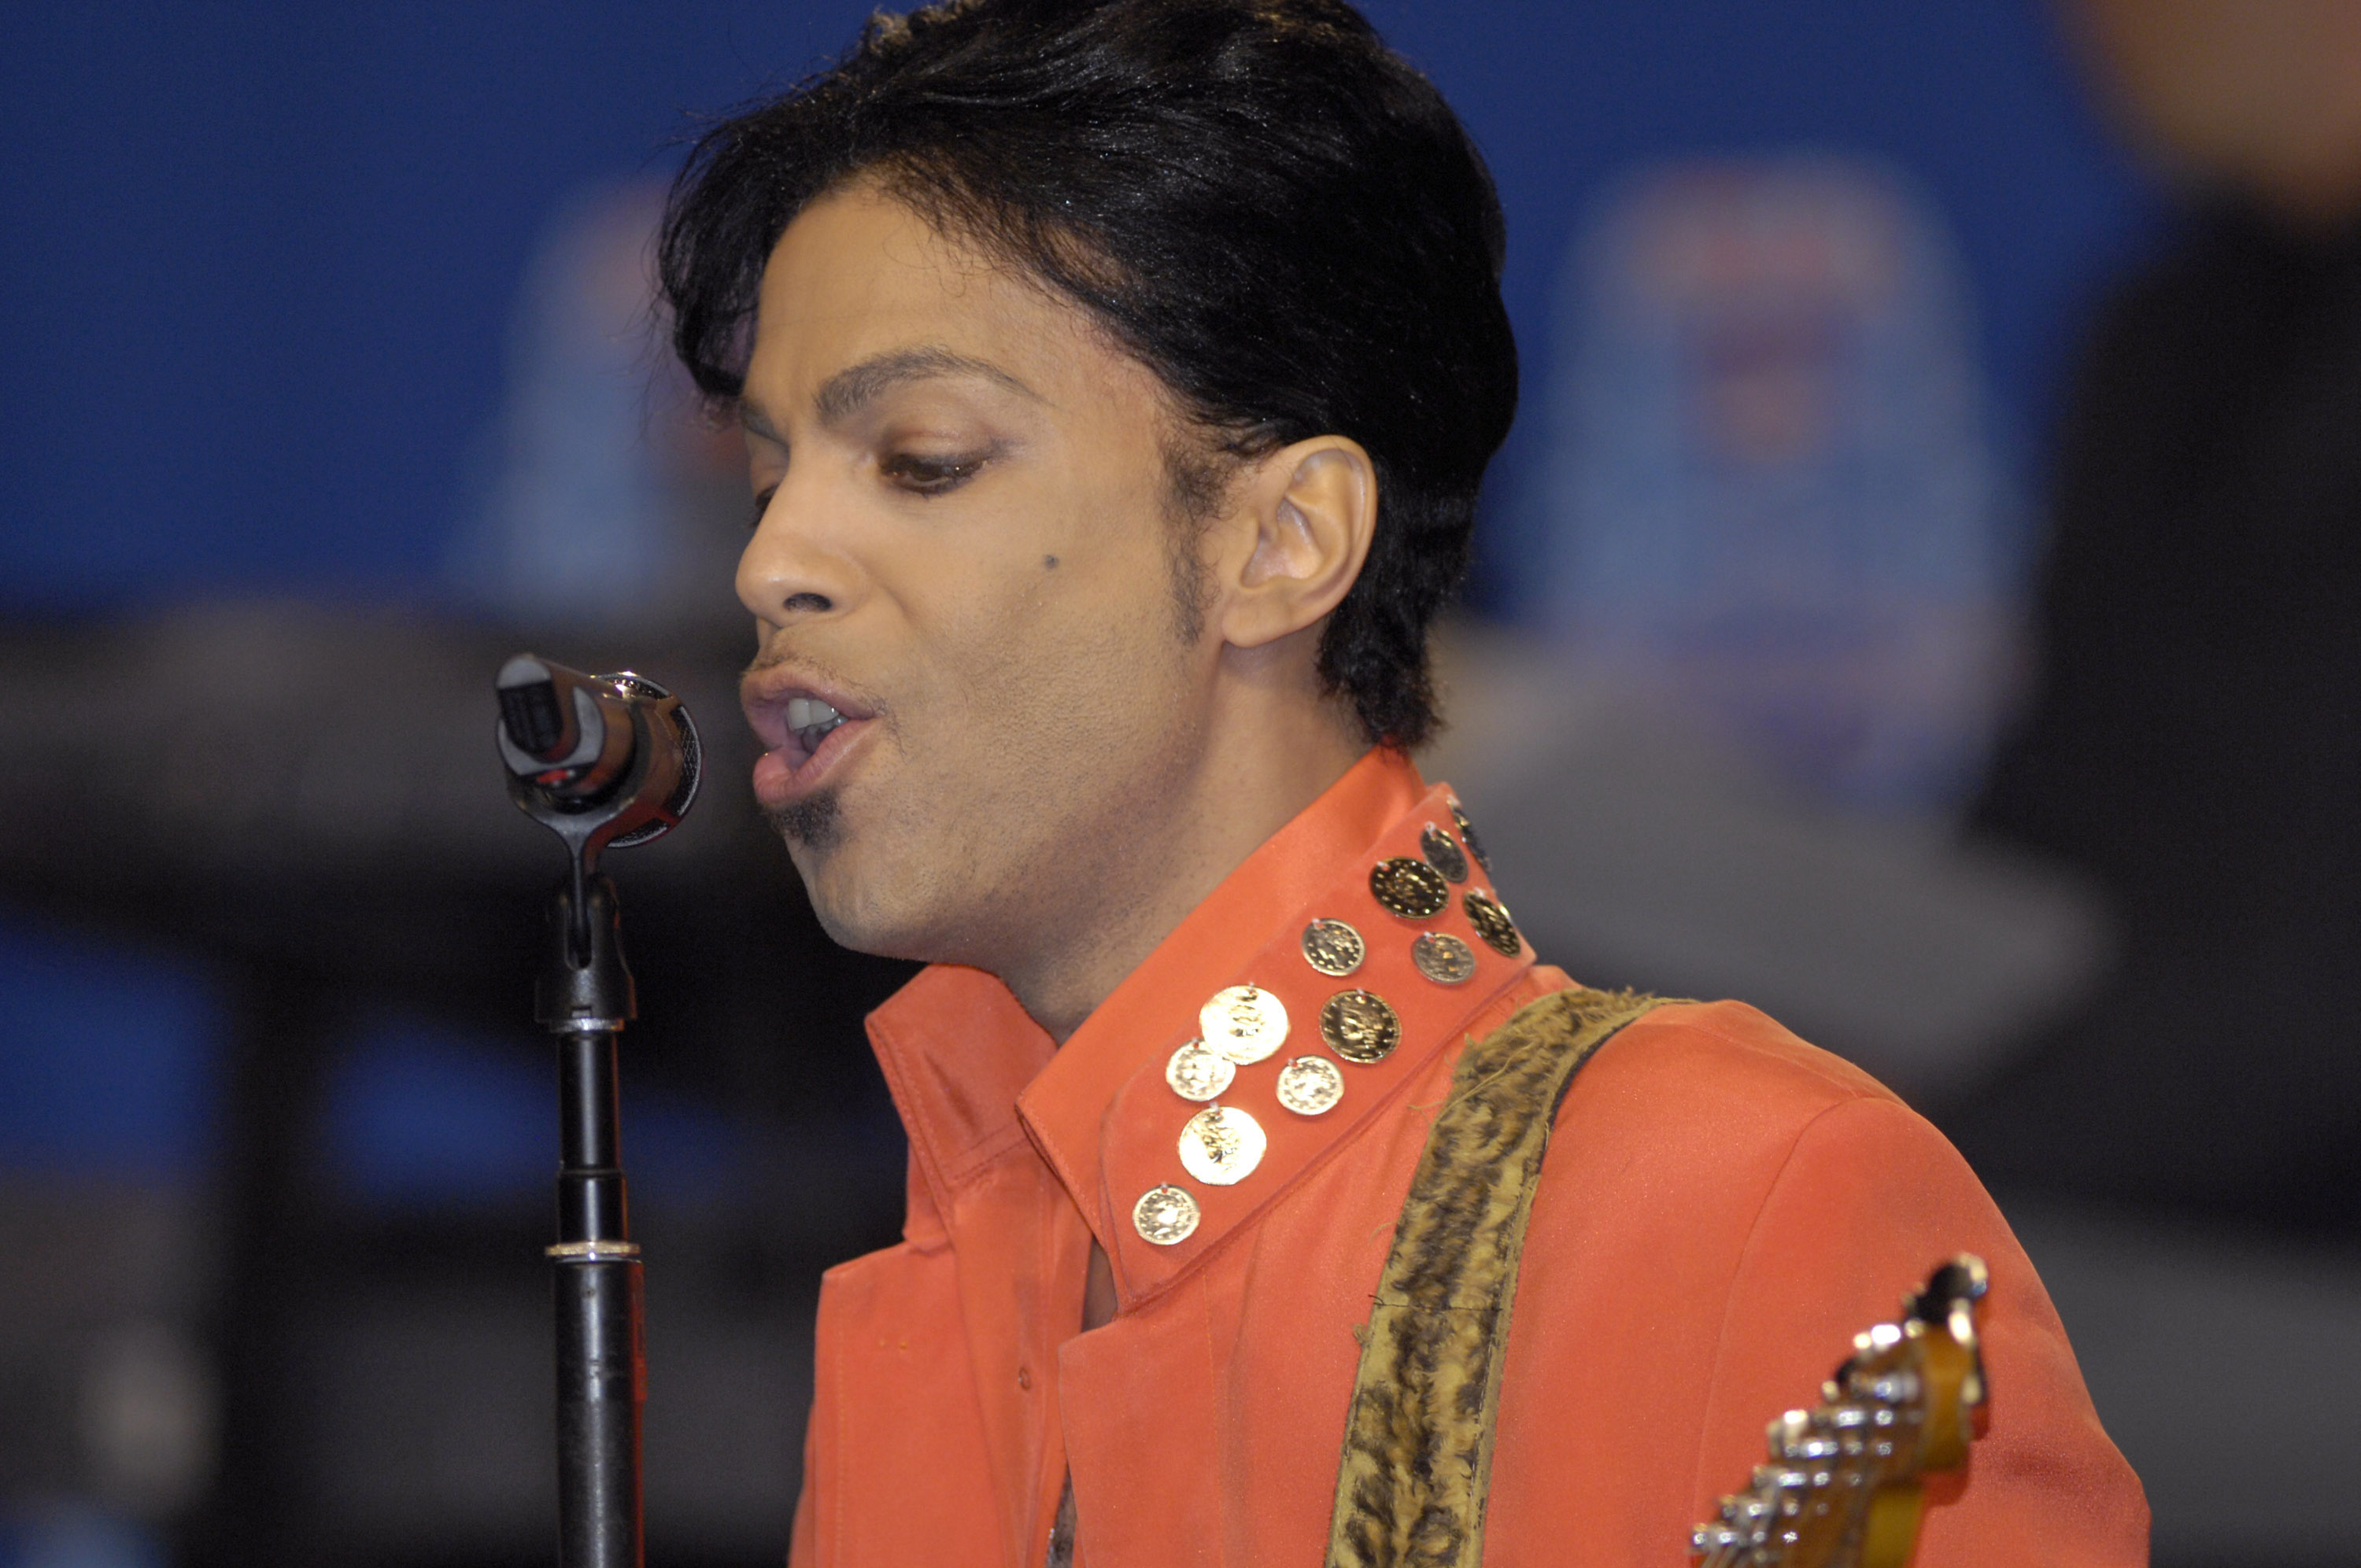 What Do Crying Doves Mean To Prince When Doves Cry Has A